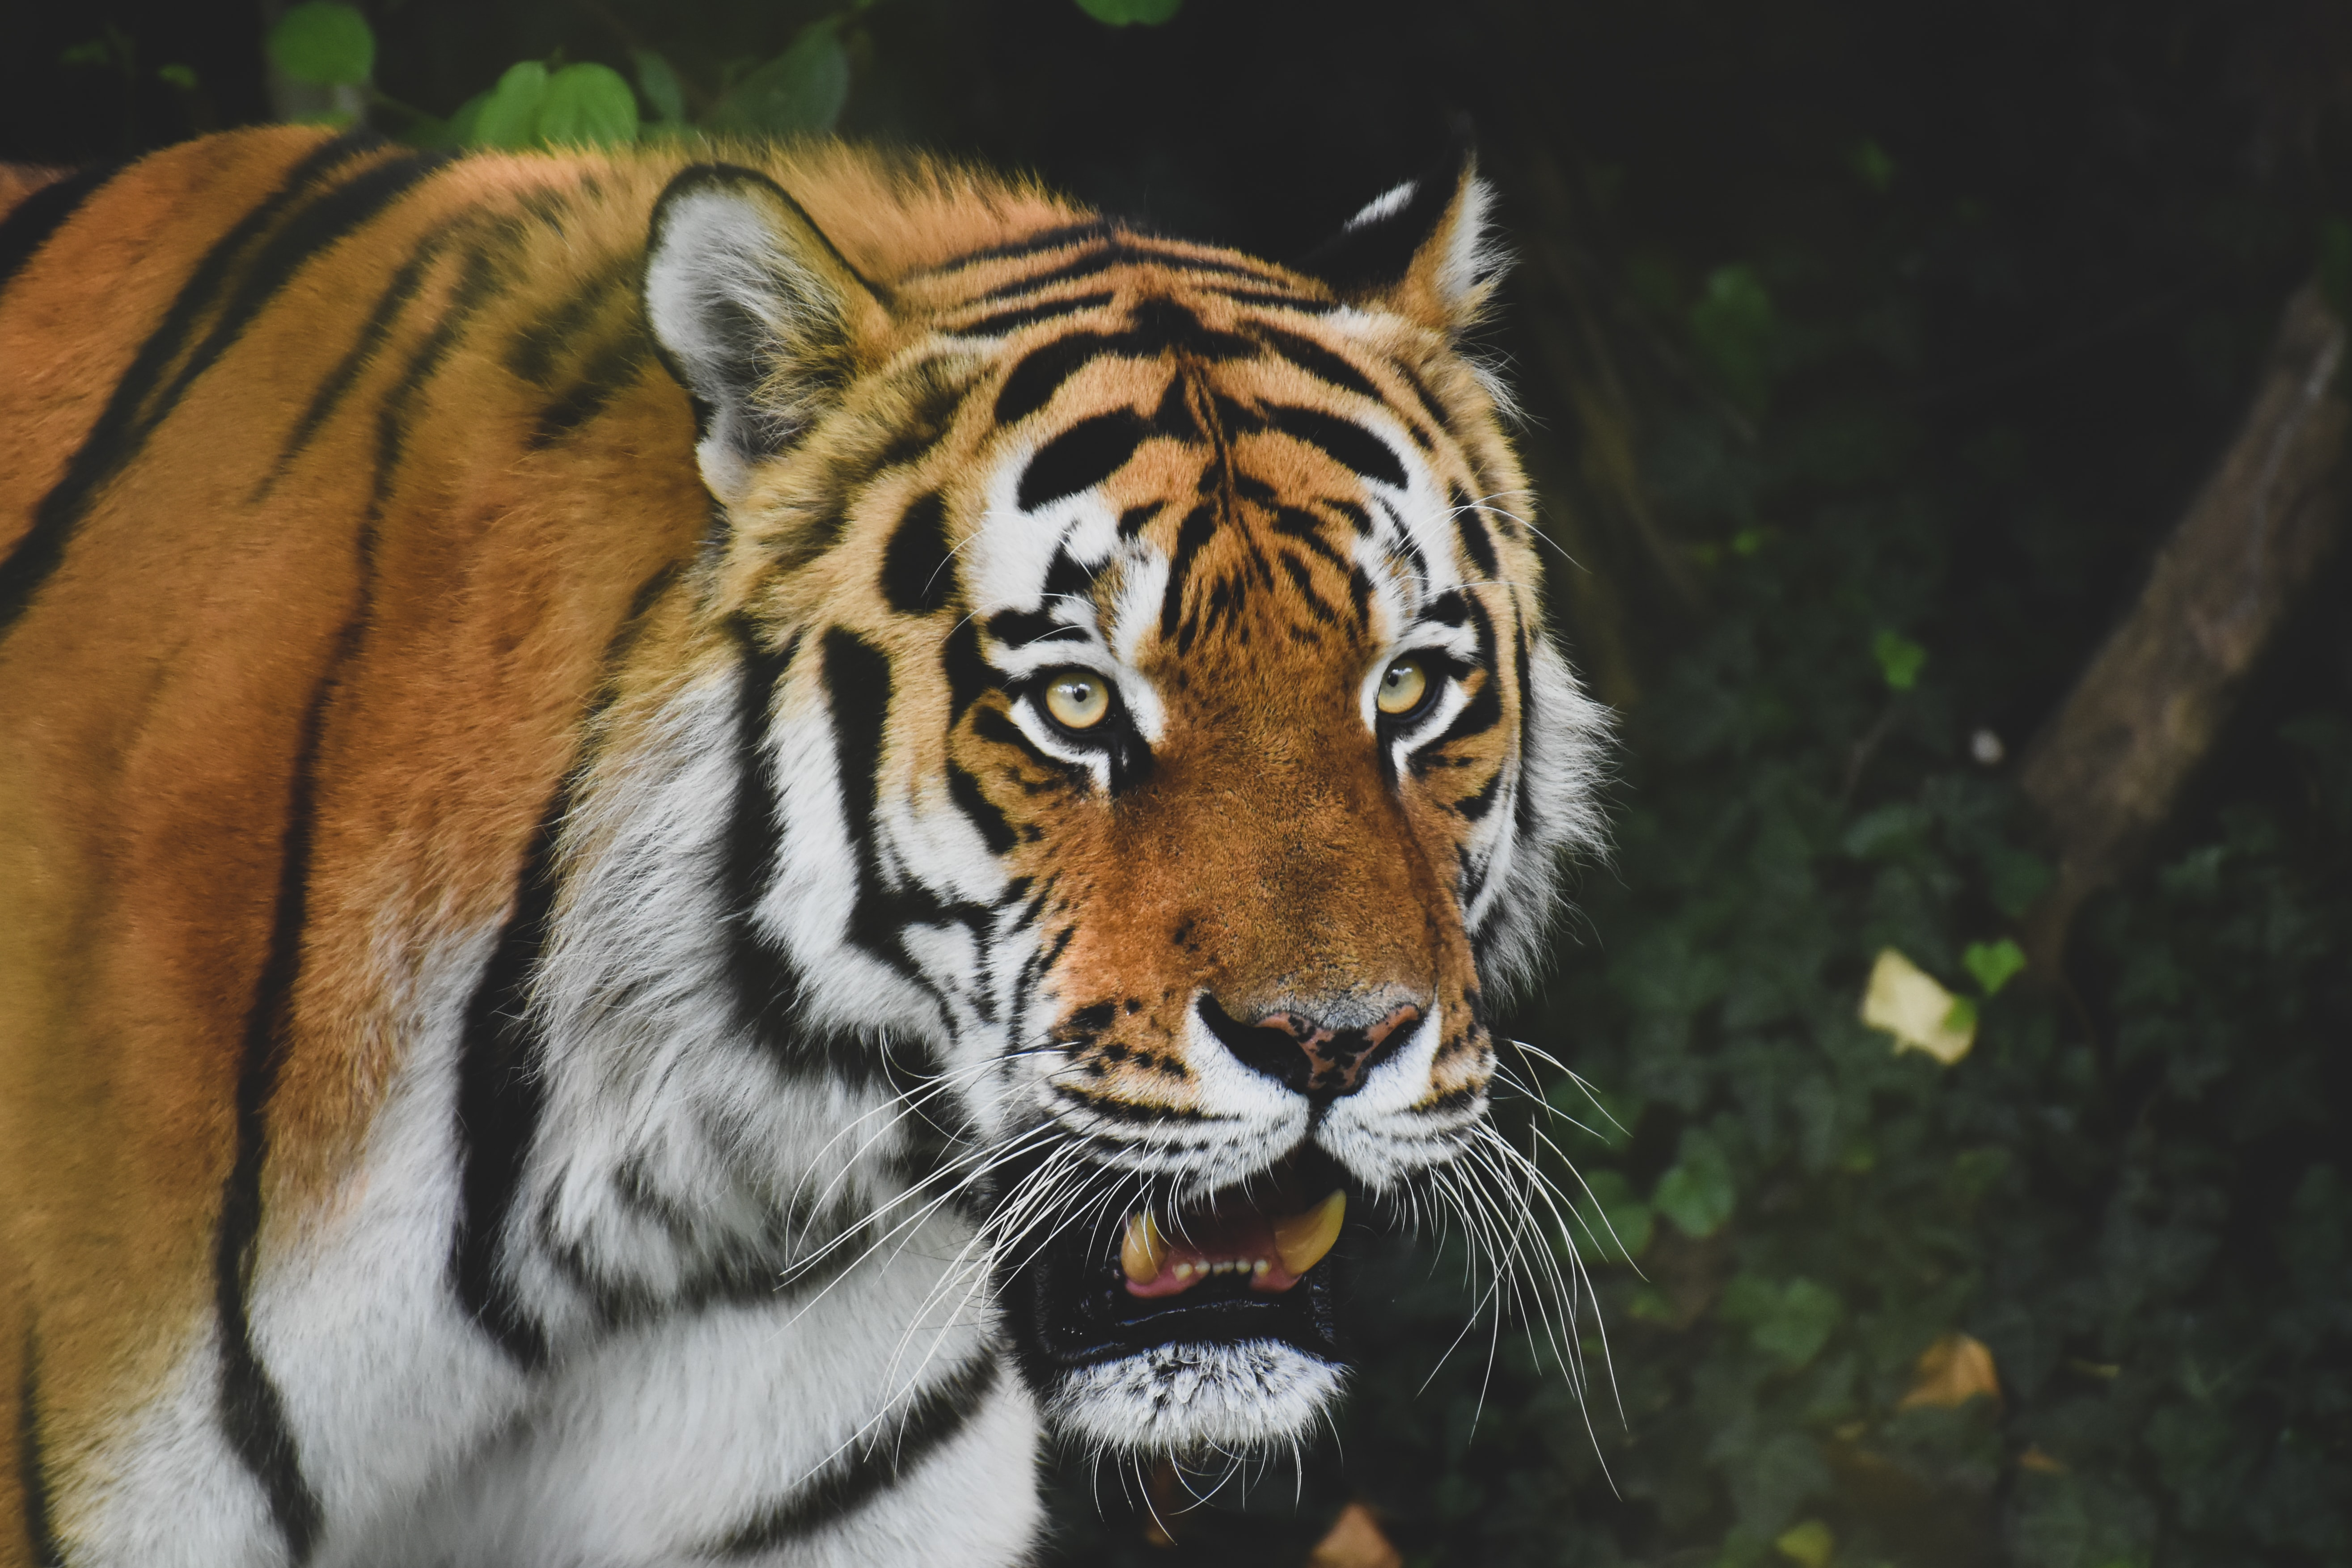 78716 download wallpaper Animals, Tiger, Predator, Animal, Sight, Opinion, Roar, Big Cat screensavers and pictures for free